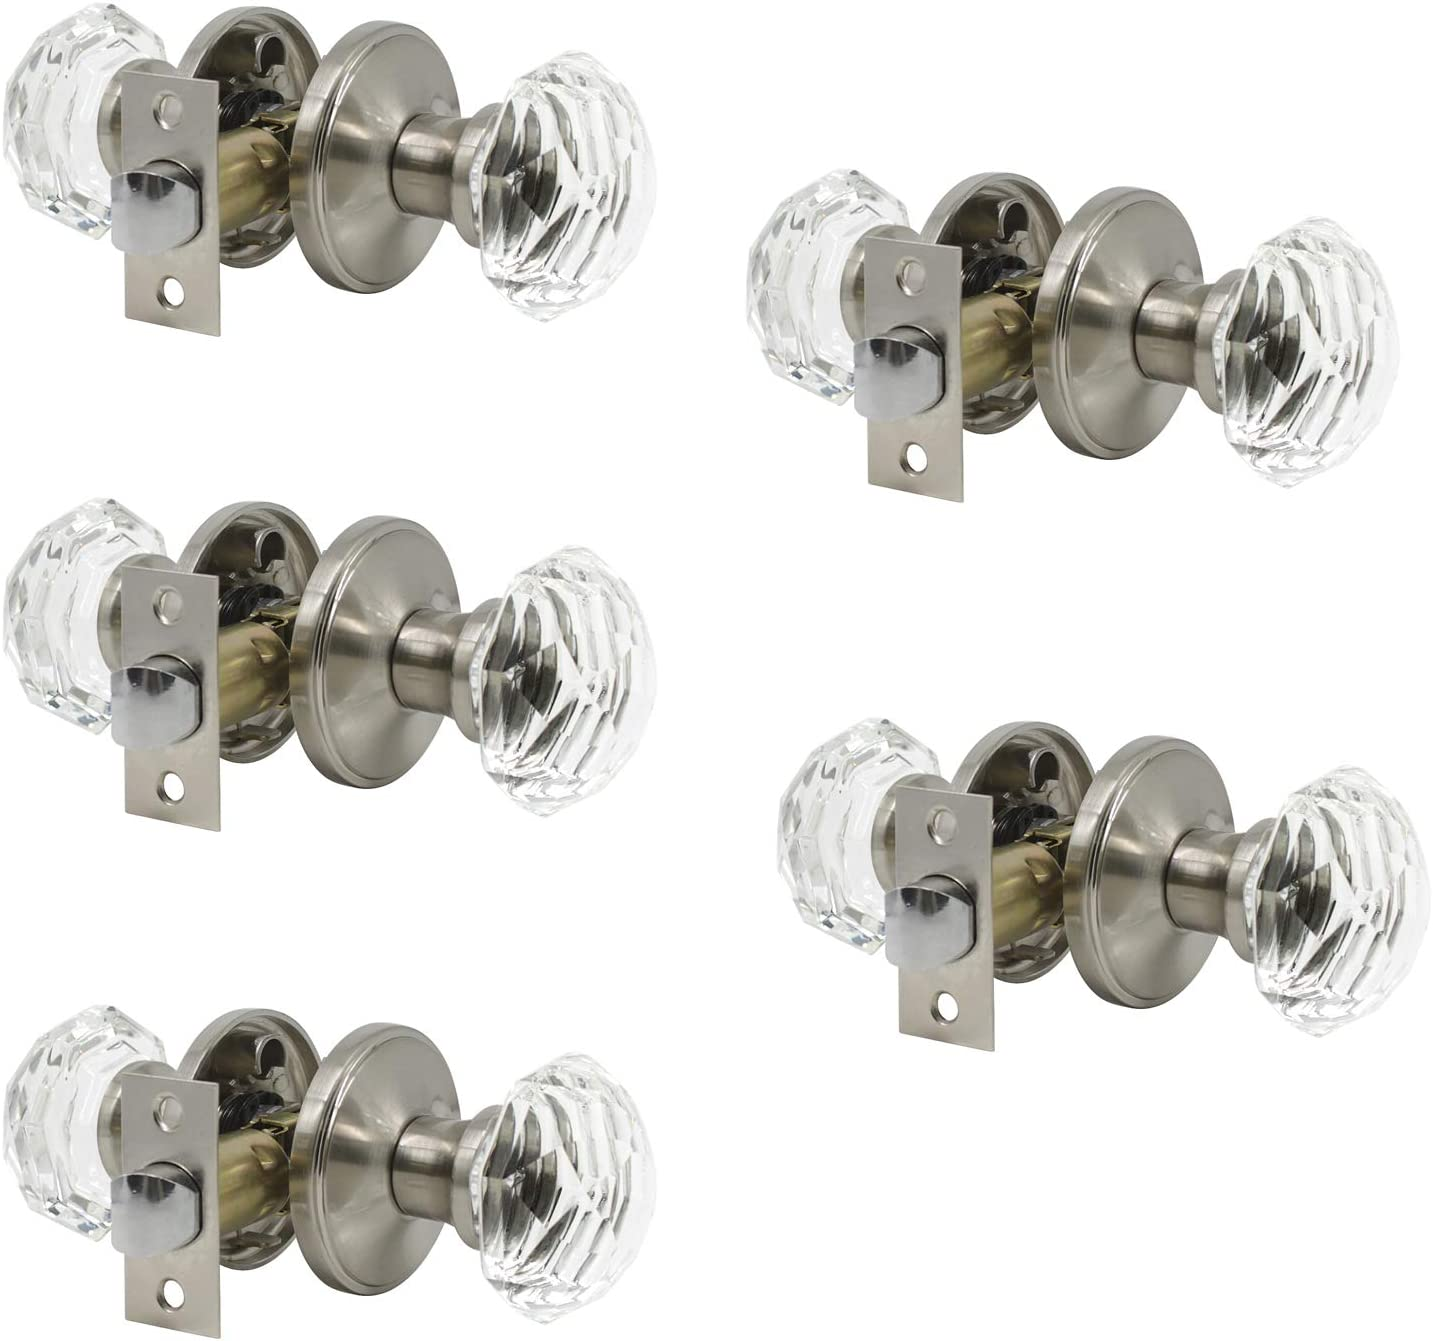 Probrico Hardware (5 Pack) Diamond Crystal Door Knobs, Keyless Knobs Passage Function for Hall and Closet Doors, Classic Round Glass Door Lock Satin Nickel,Perfect for Replacing Broken Antique Lock